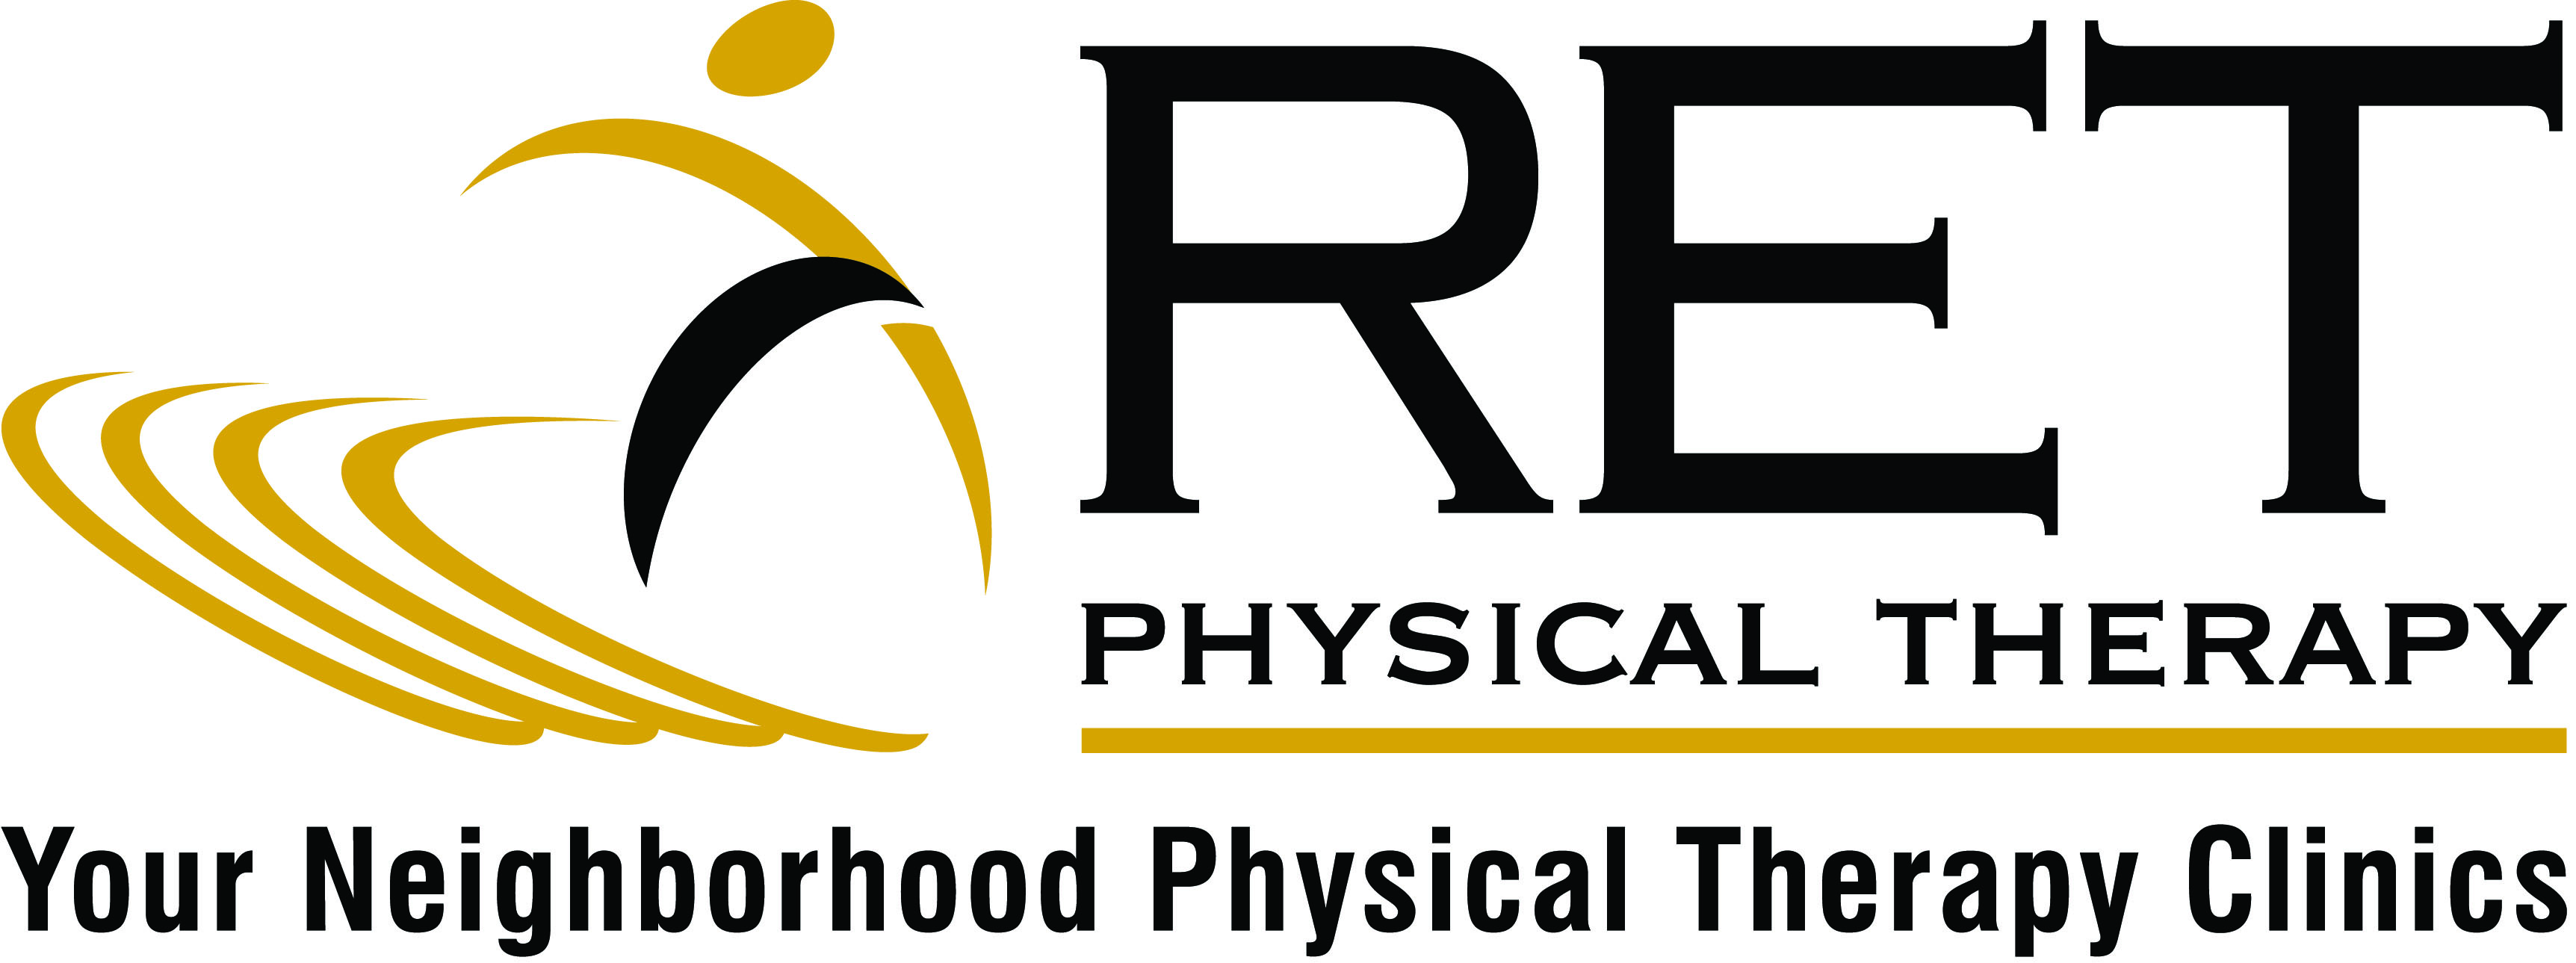 RET Physical Therapy (Gold)